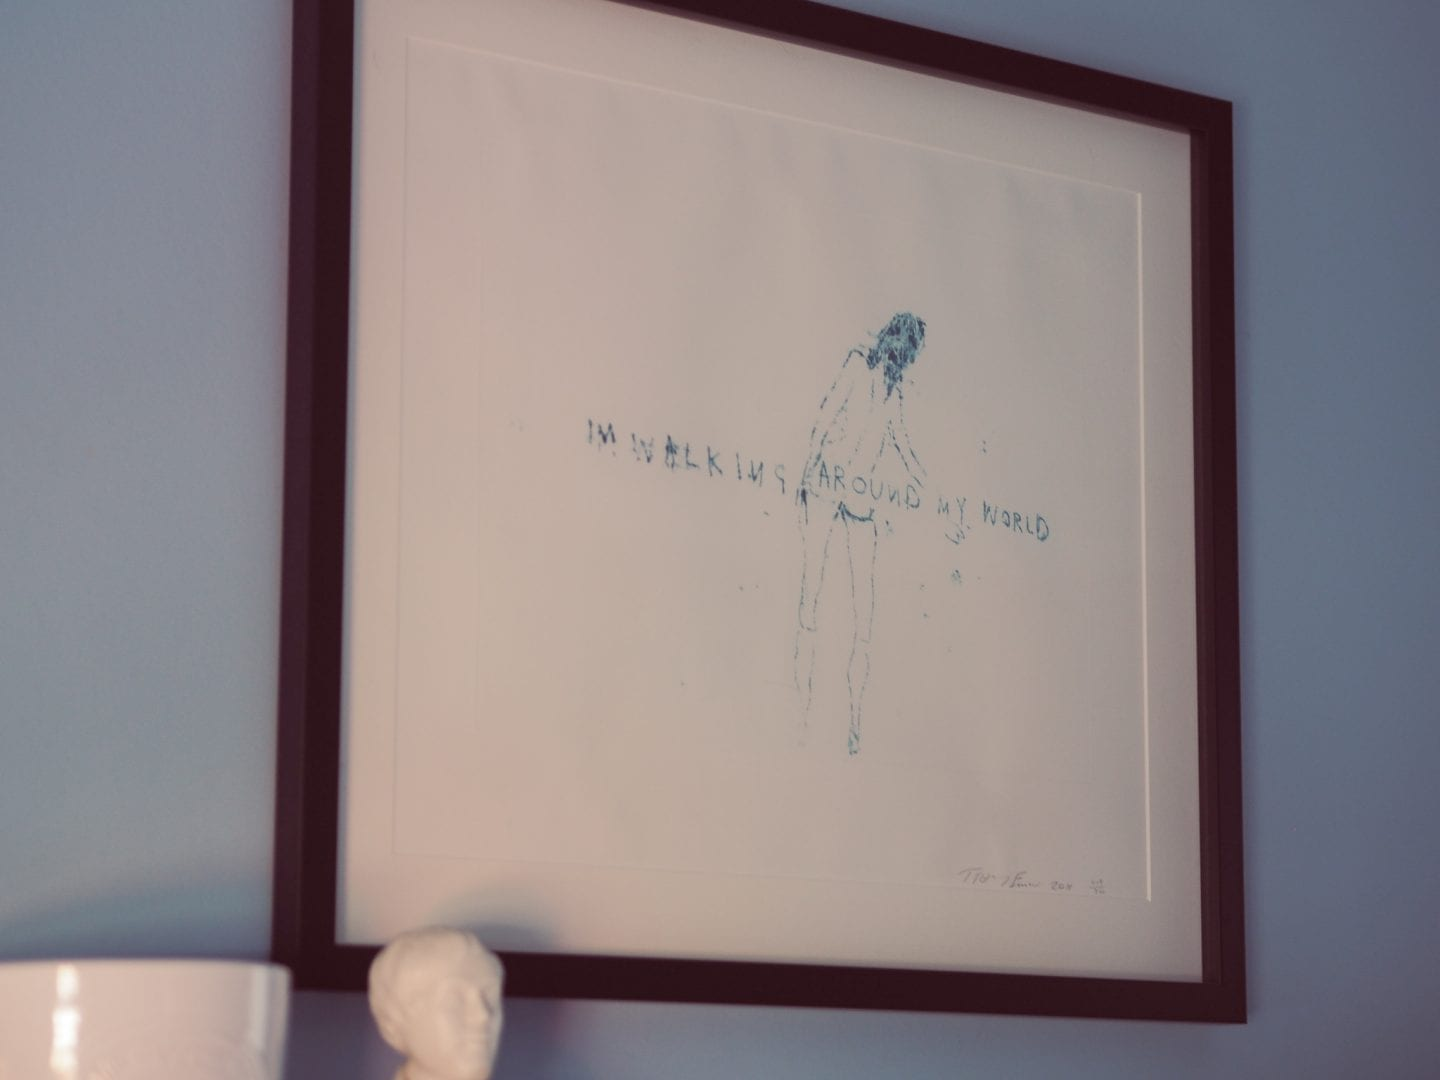 tracey-emin-im-walking-around-my-world-limited-edition-art-print